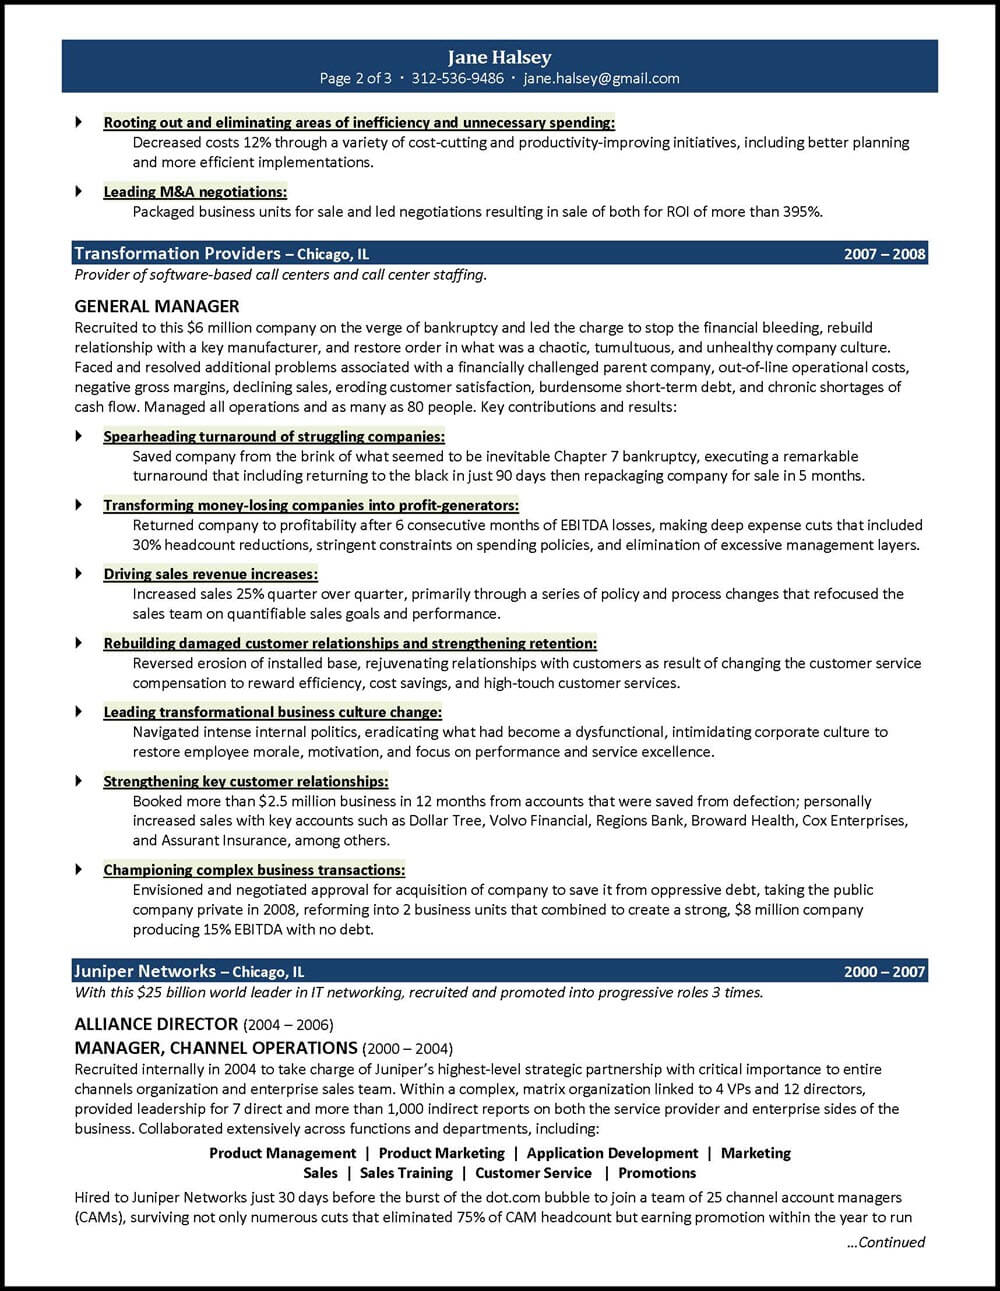 ceo president general manager resume distinctive career services for position template Resume Resume For General Manager Position